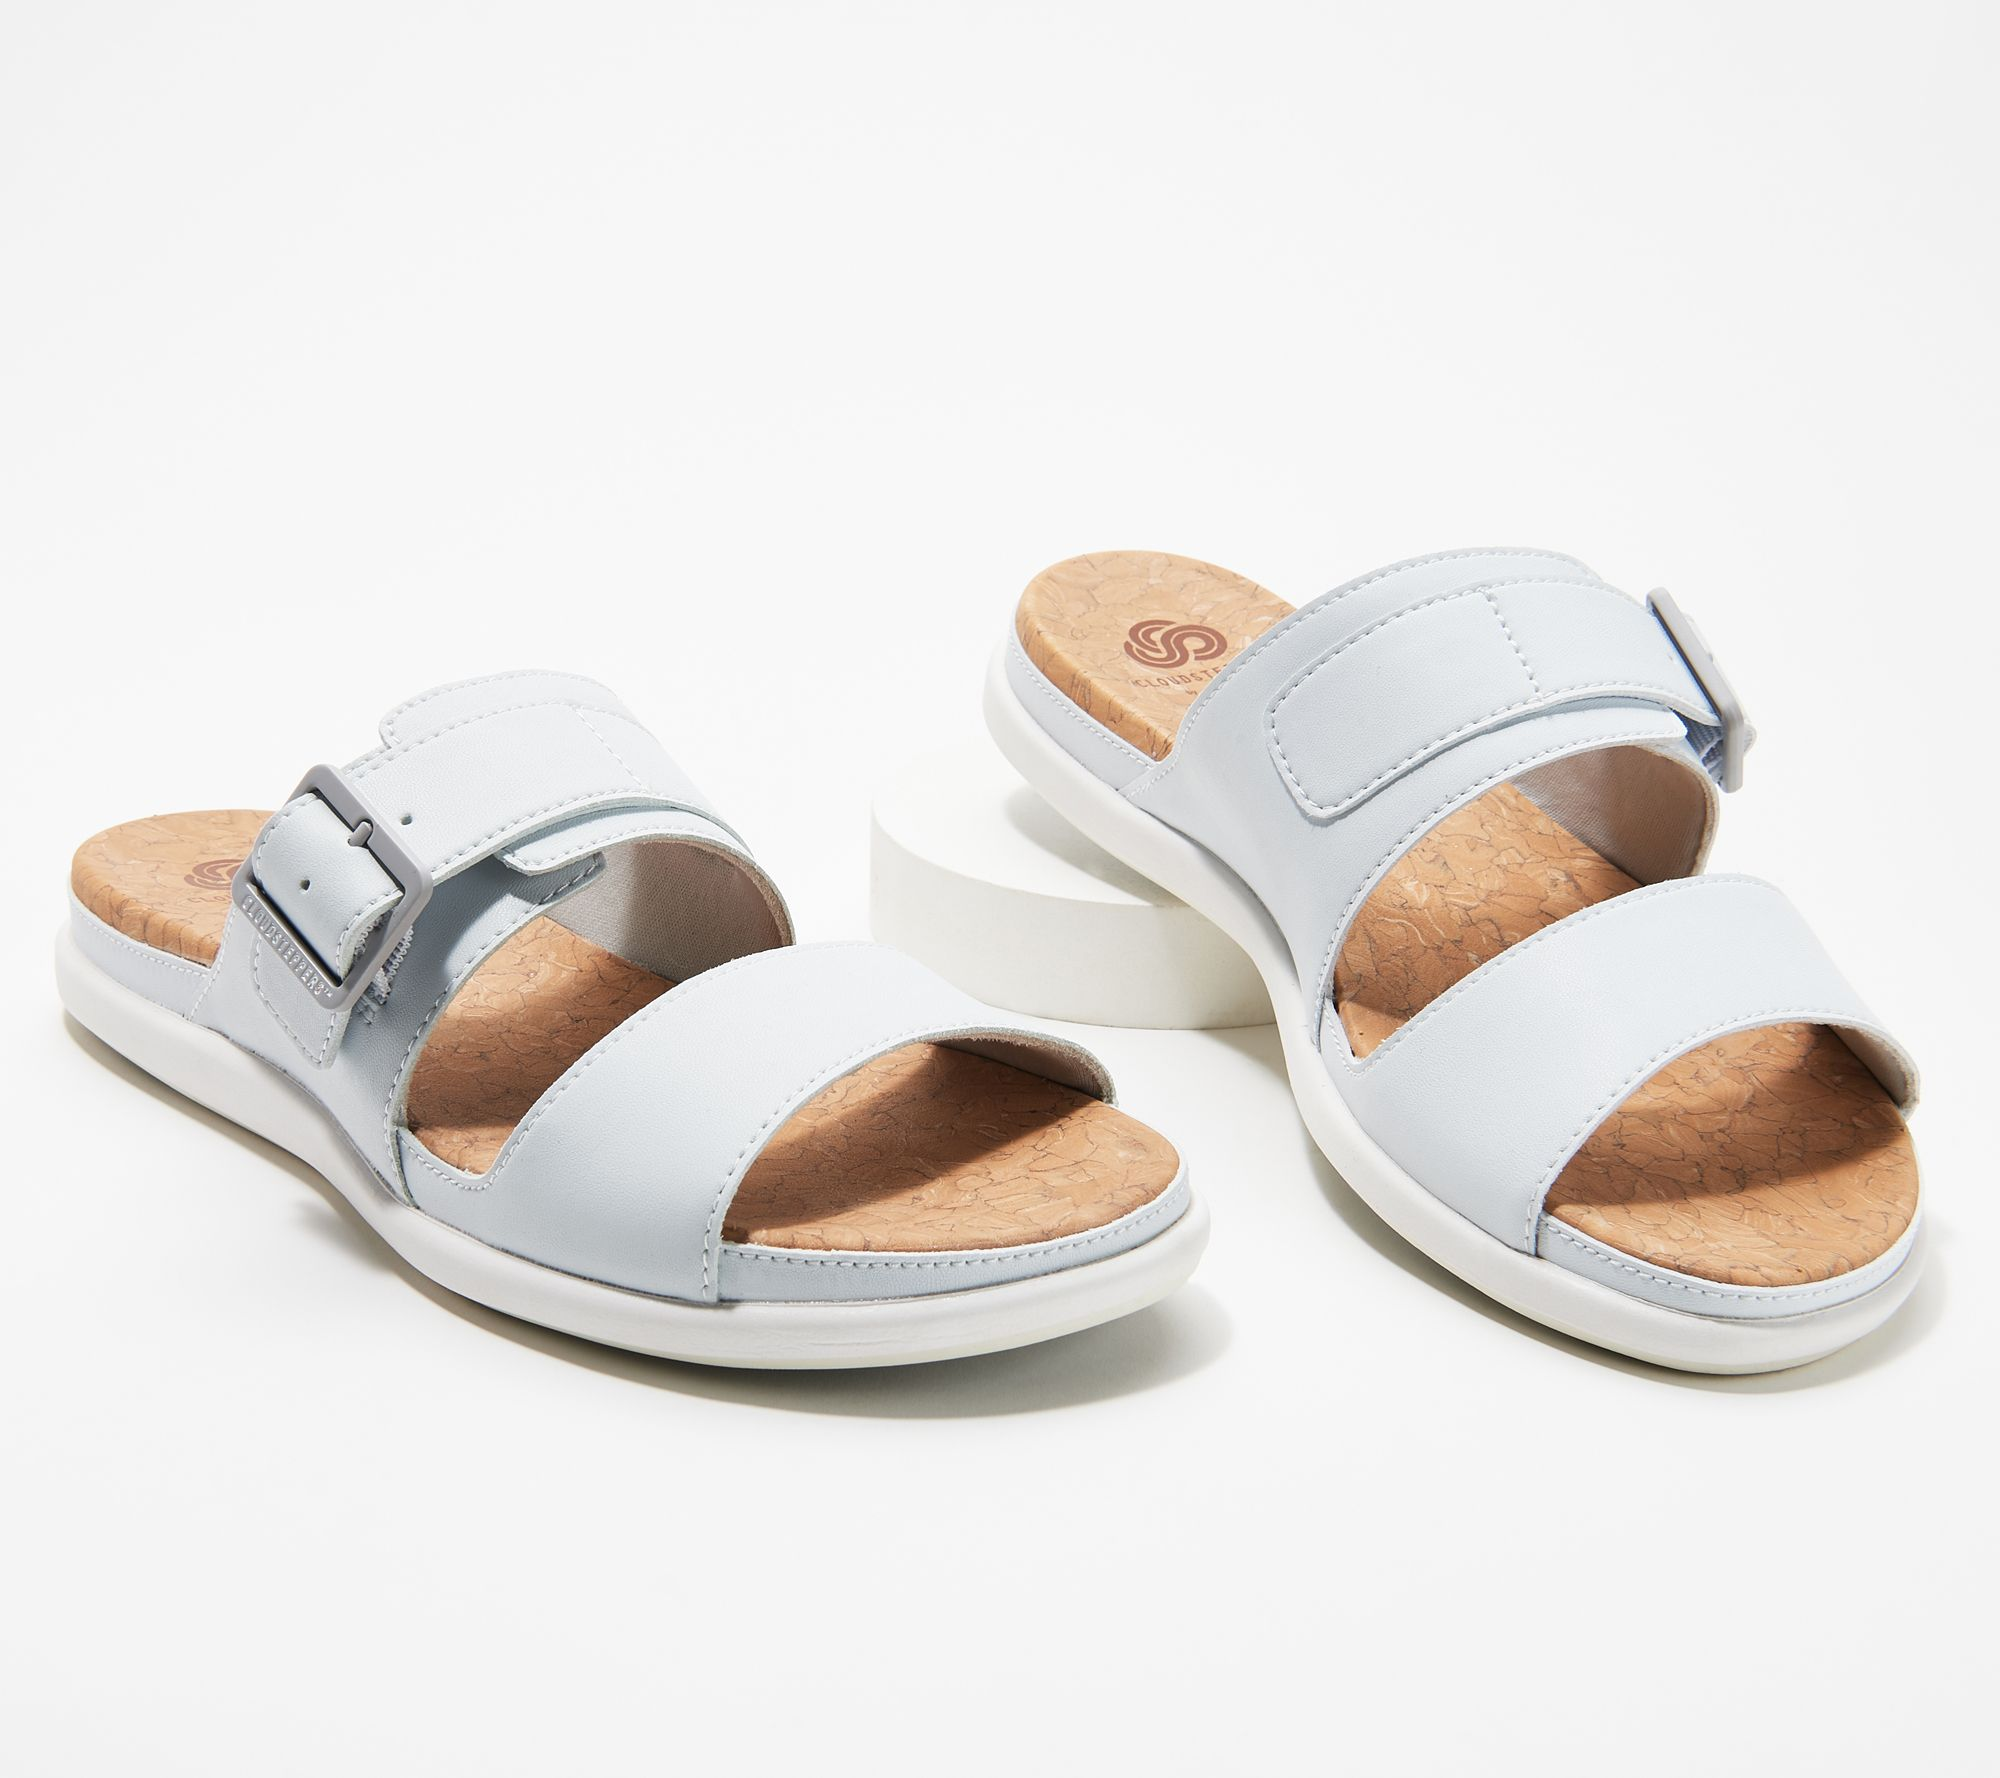 997a6cd5dbec CLOUDSTEPPERS by Clarks Slip-On Sandals - Step June Tide - Page 1 — QVC.com